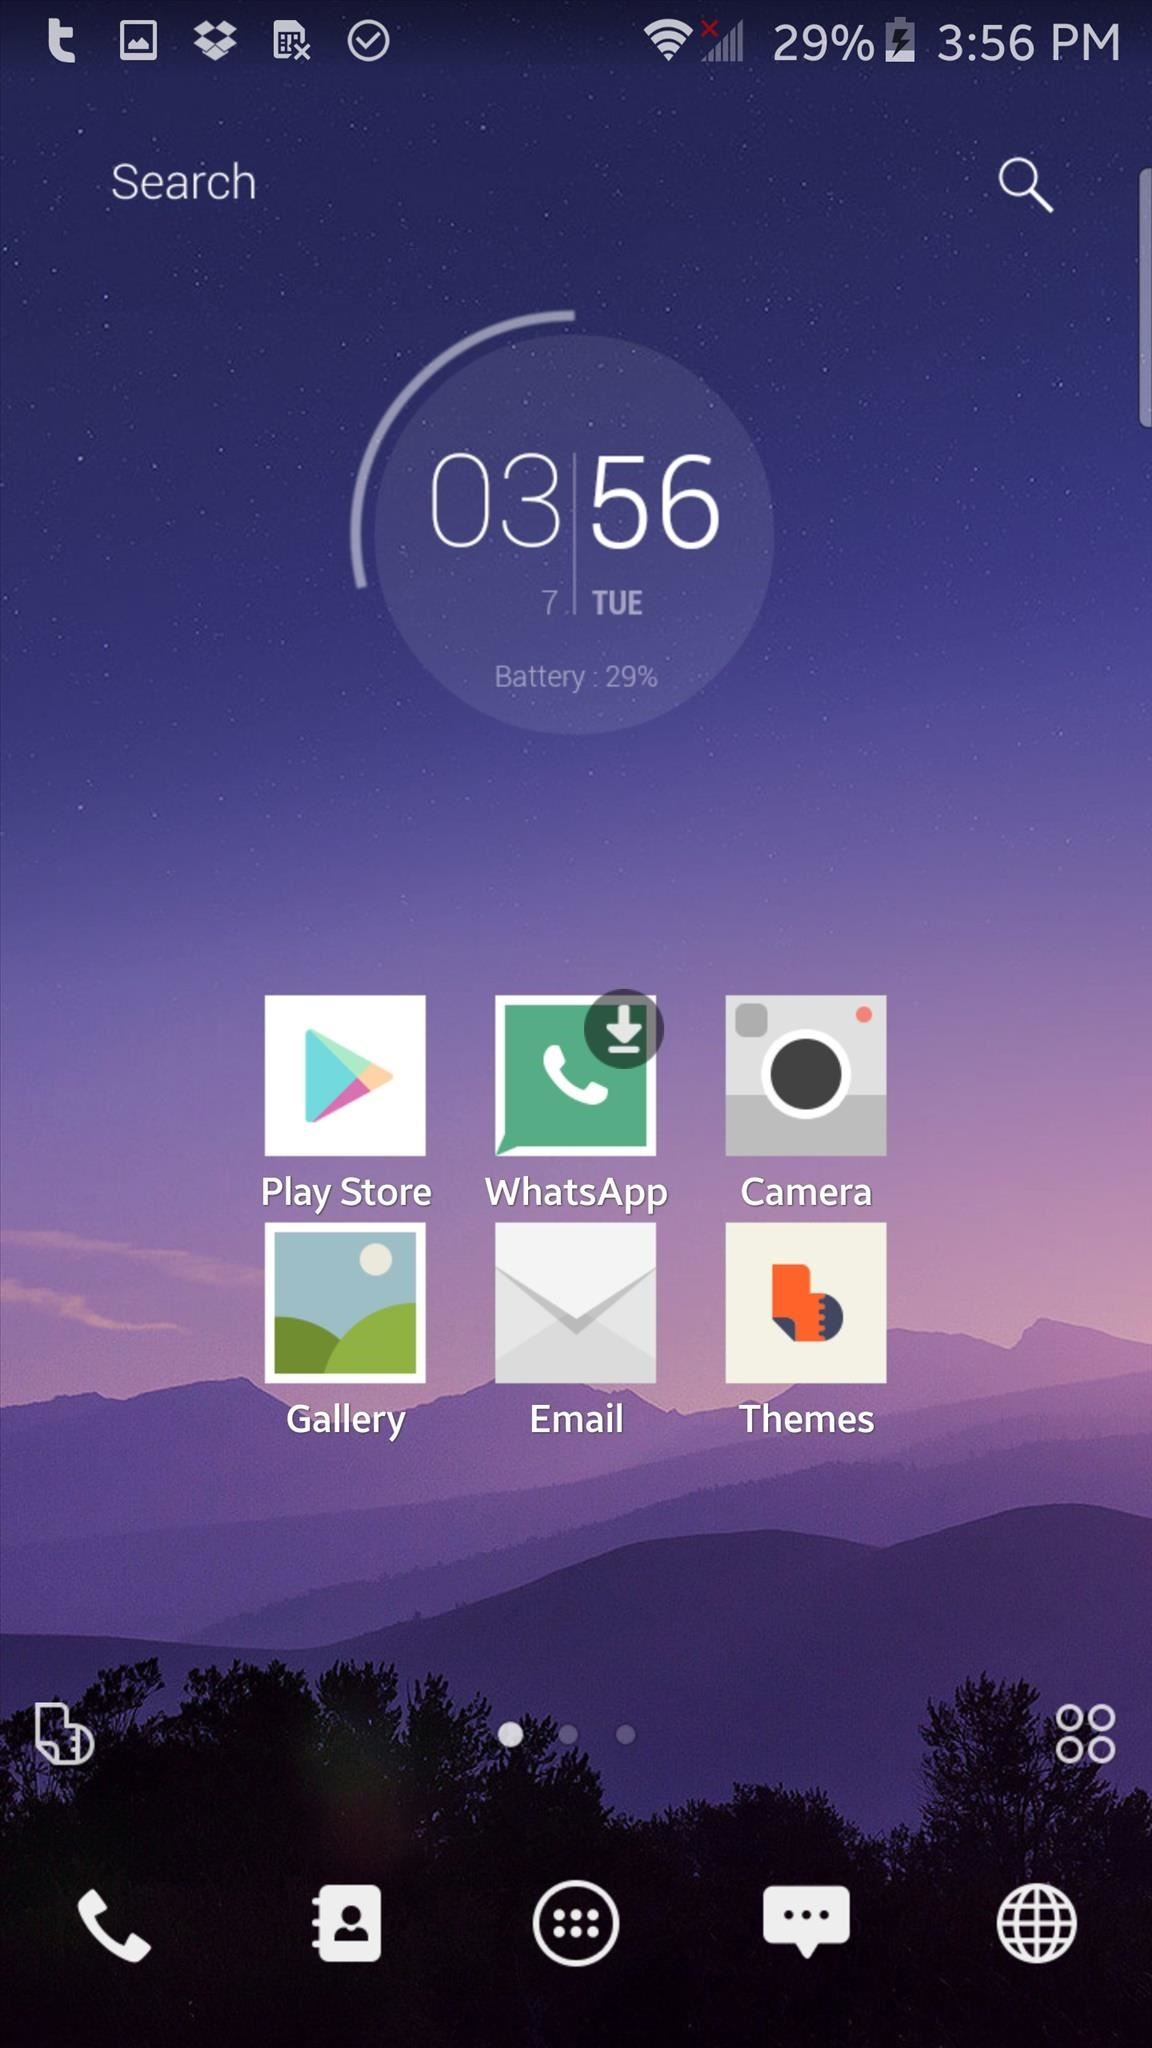 6 Unique Android Launchers That'll Get You to Ditch Your Stock Home Screen